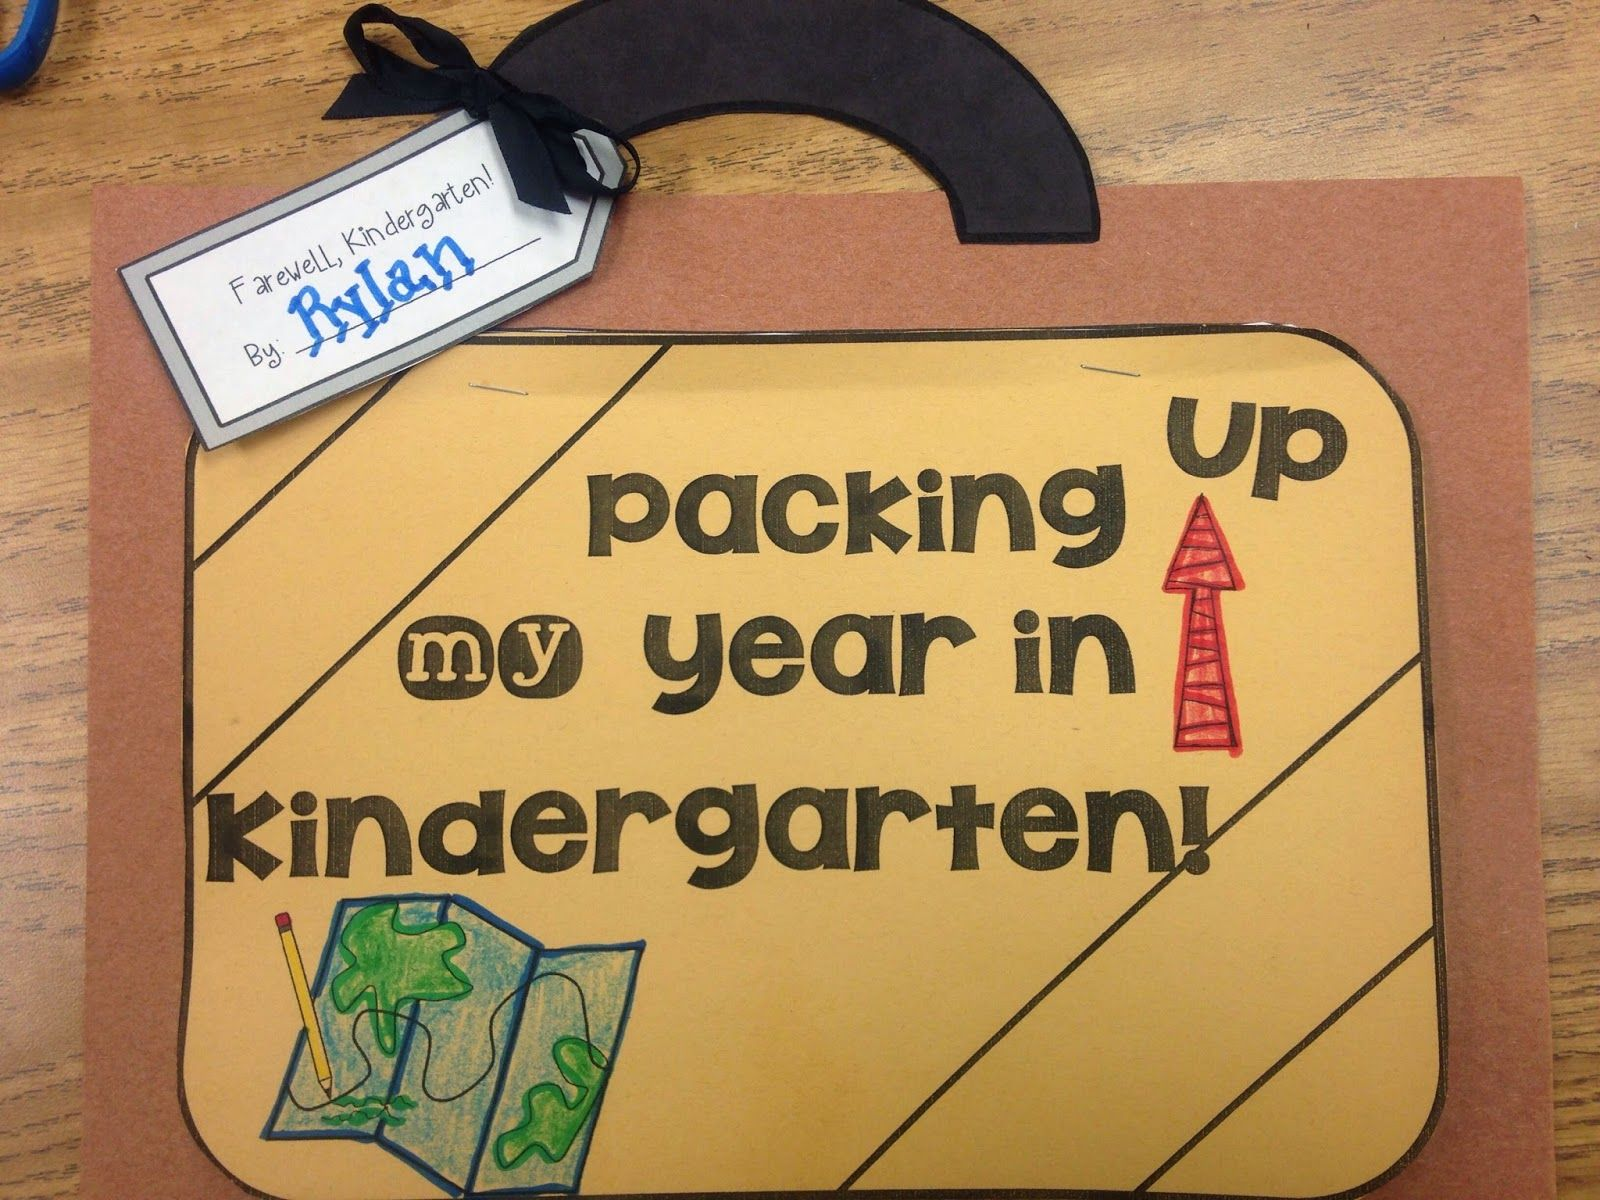 Packing Year Fun Memory Book Kids In Kindergarten-fourth Grade Super Cure And